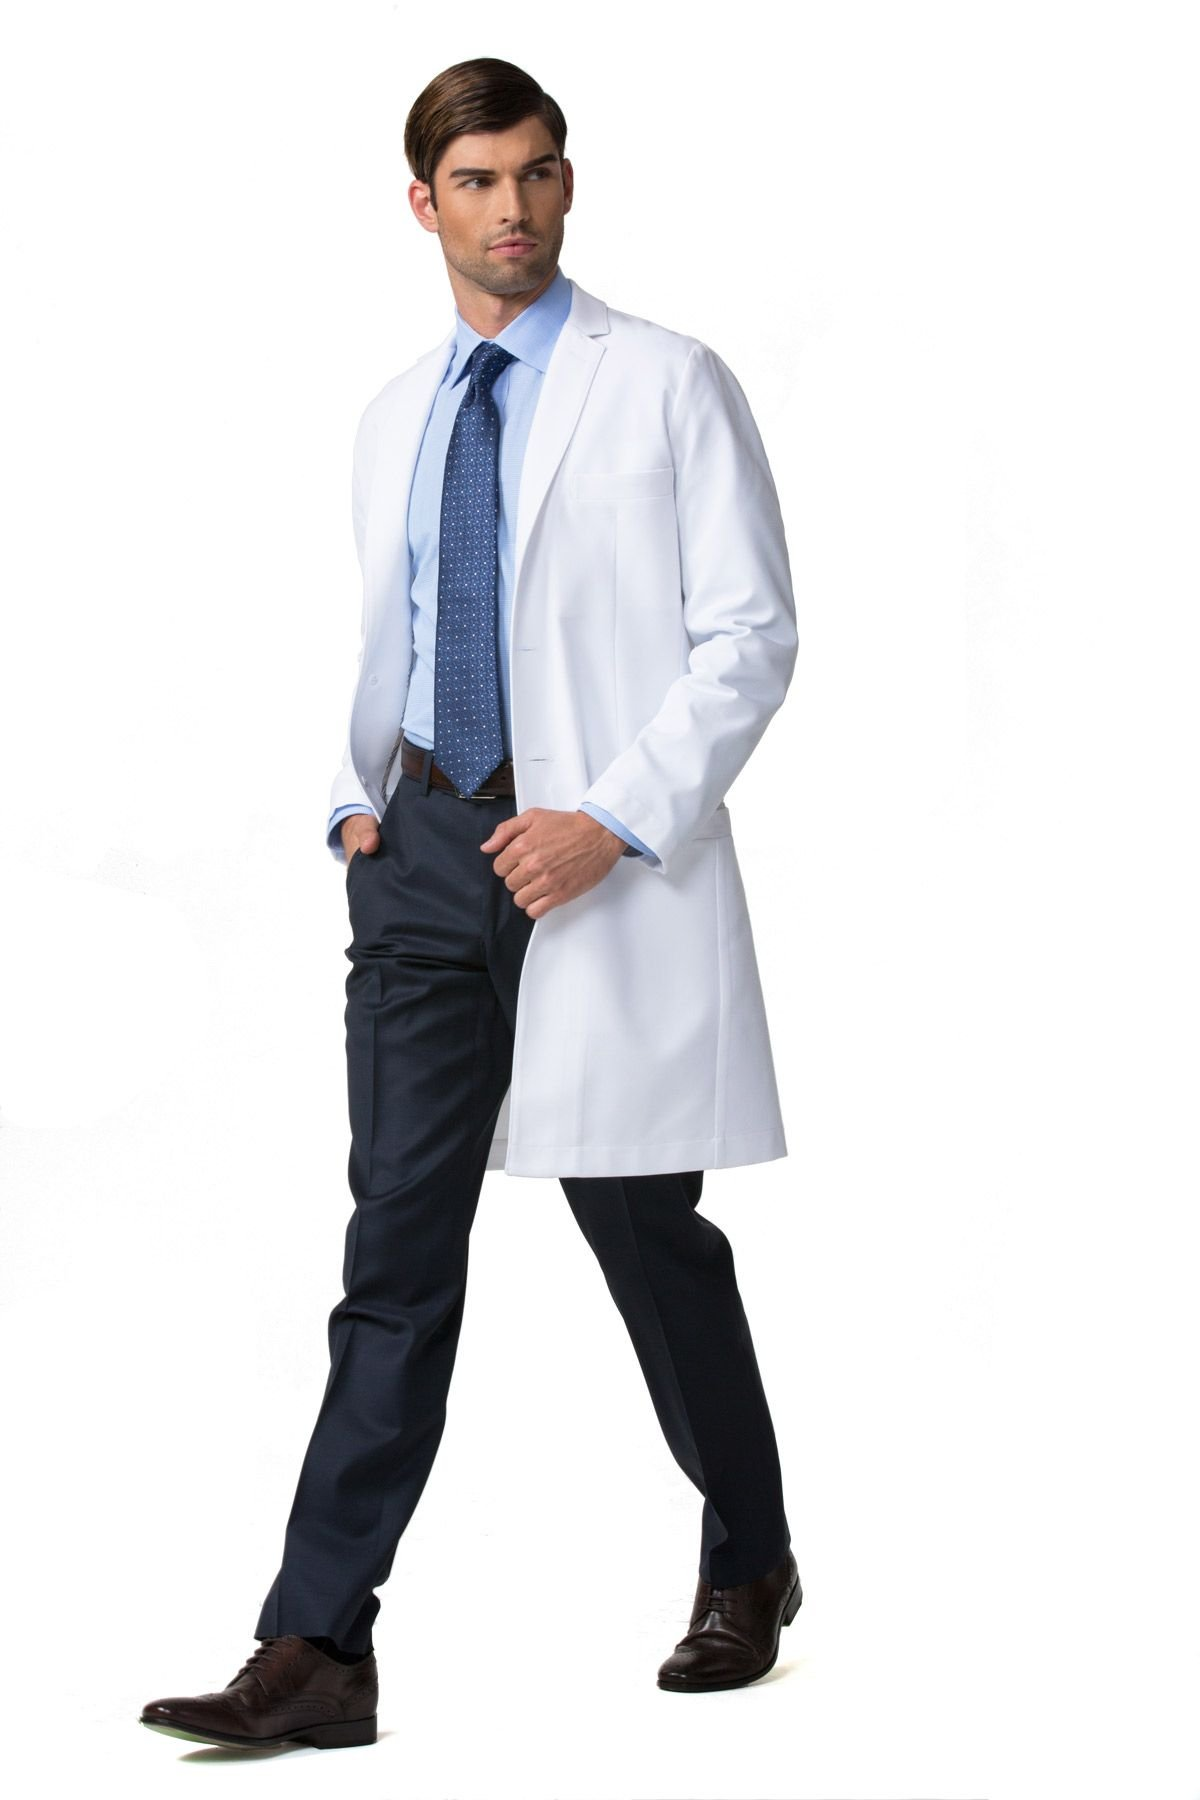 Men's E. Wilson Slim Fit M3 White Lab Coat- Professional Fit With Performance Fabric - Size 36 by Medelita (Image #4)